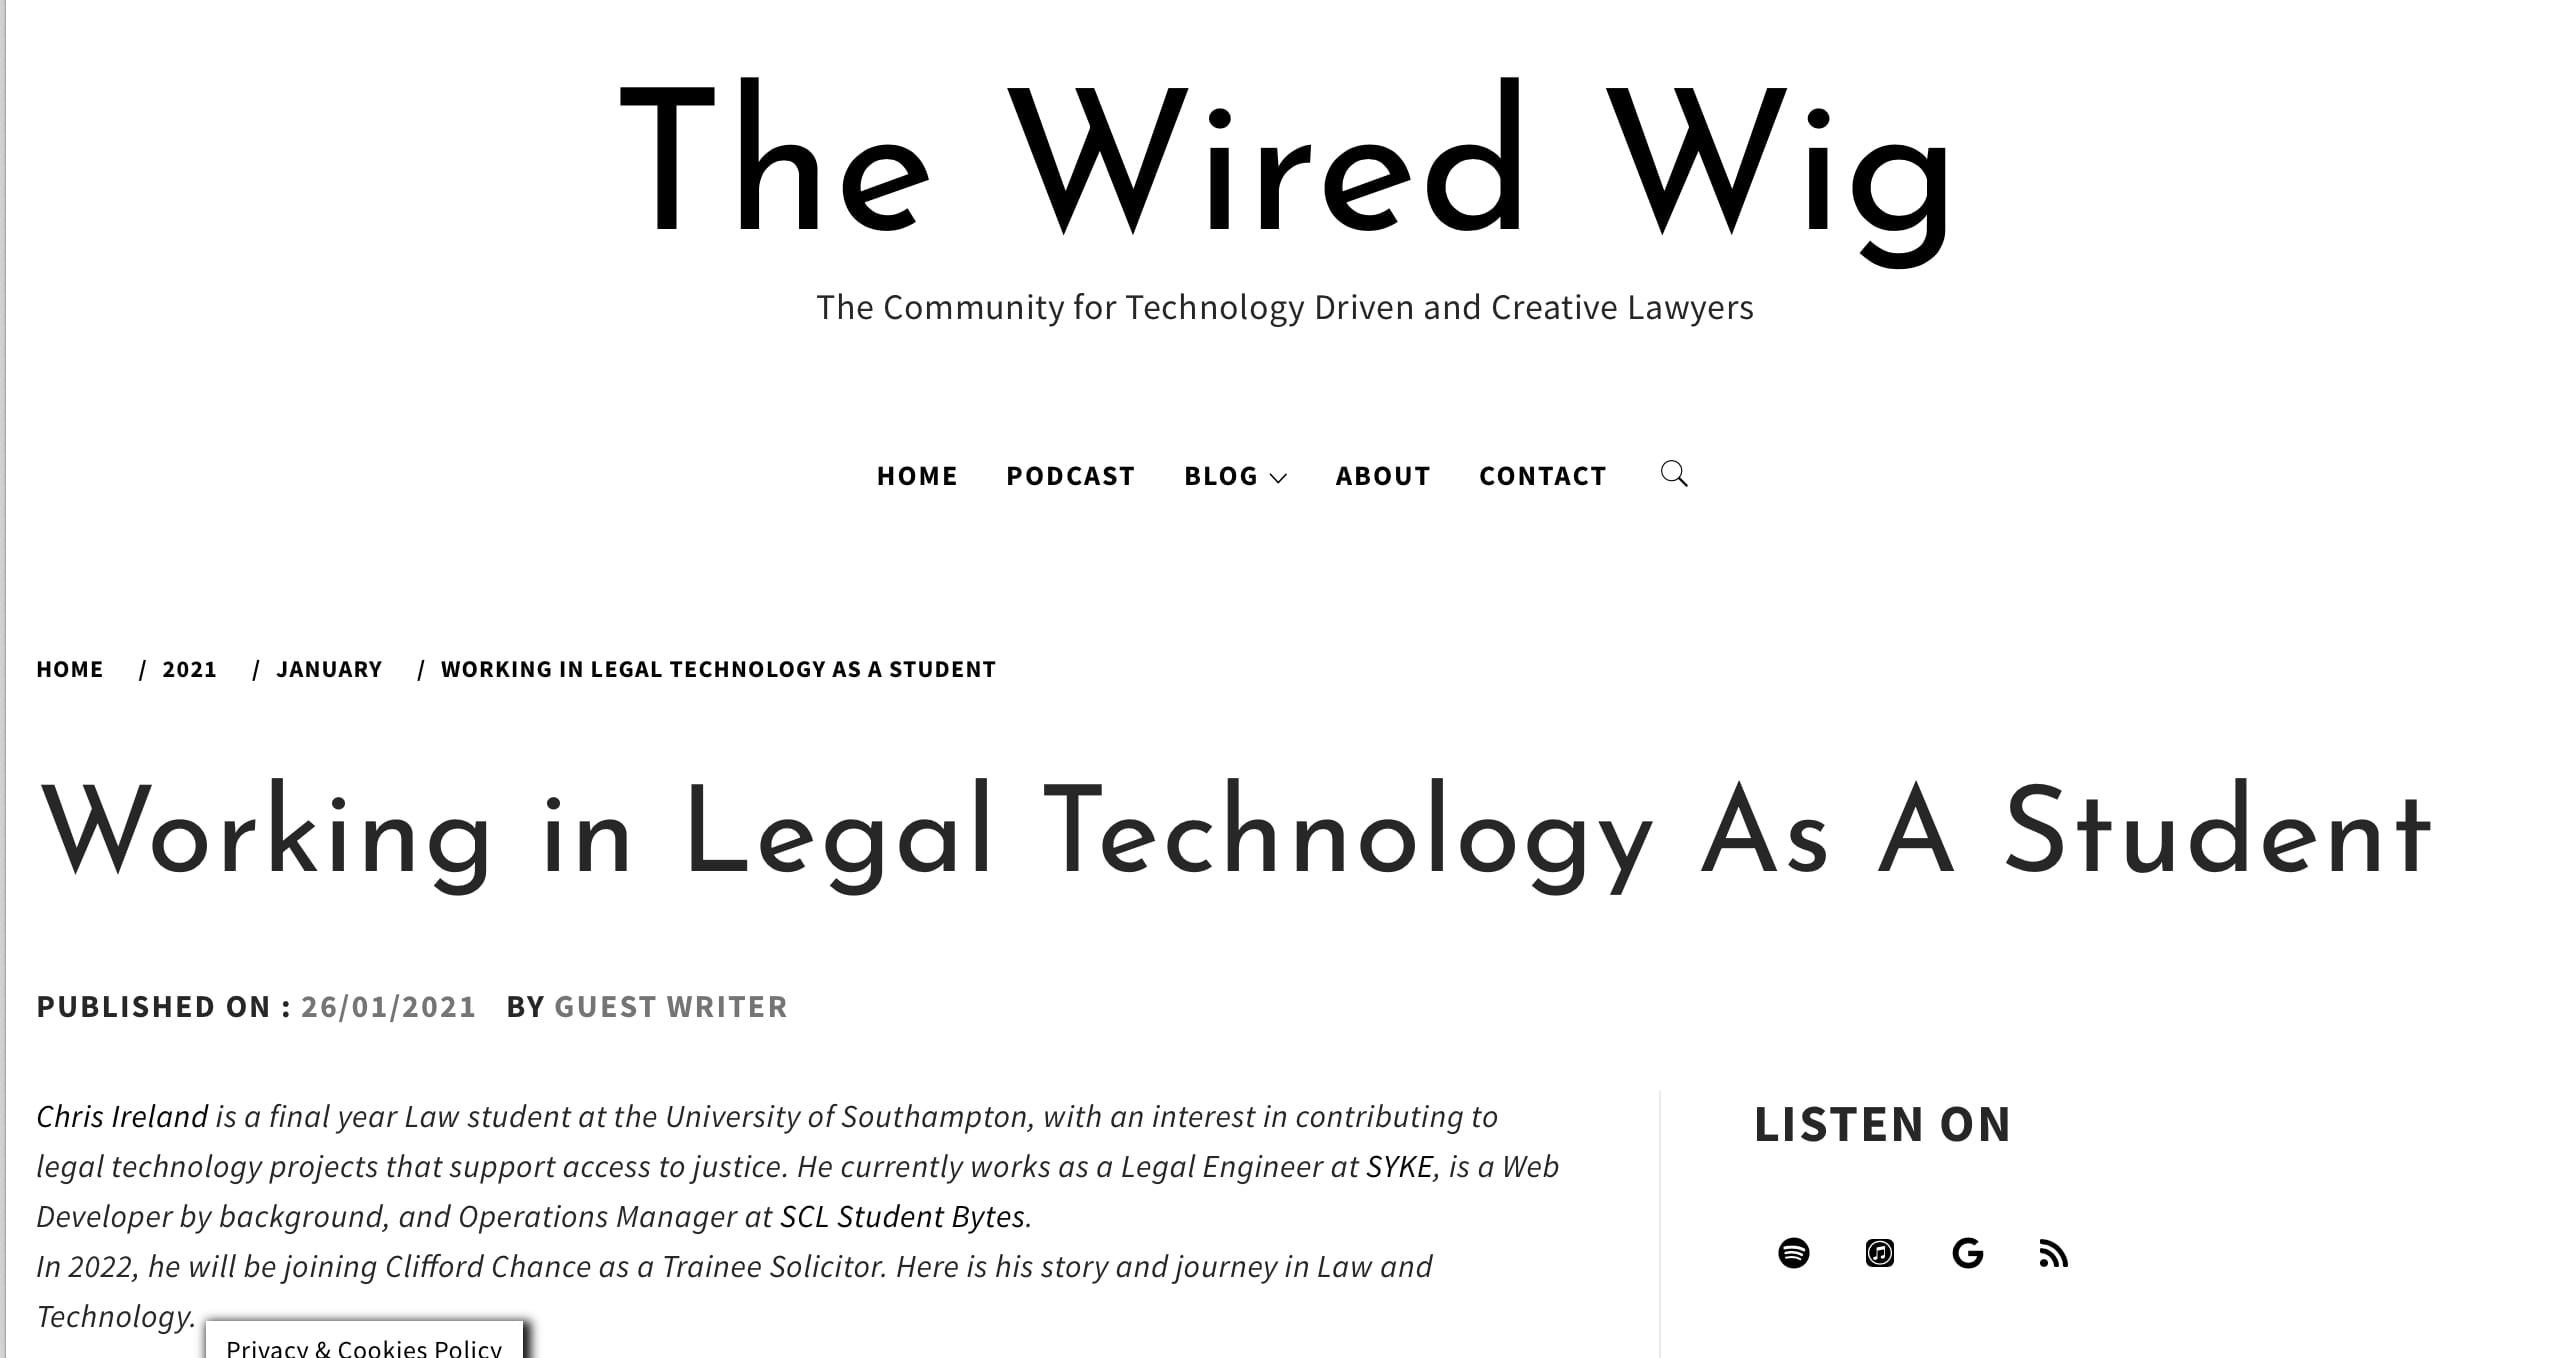 Working in Legal Technology as a Student Published in The Wired Wig